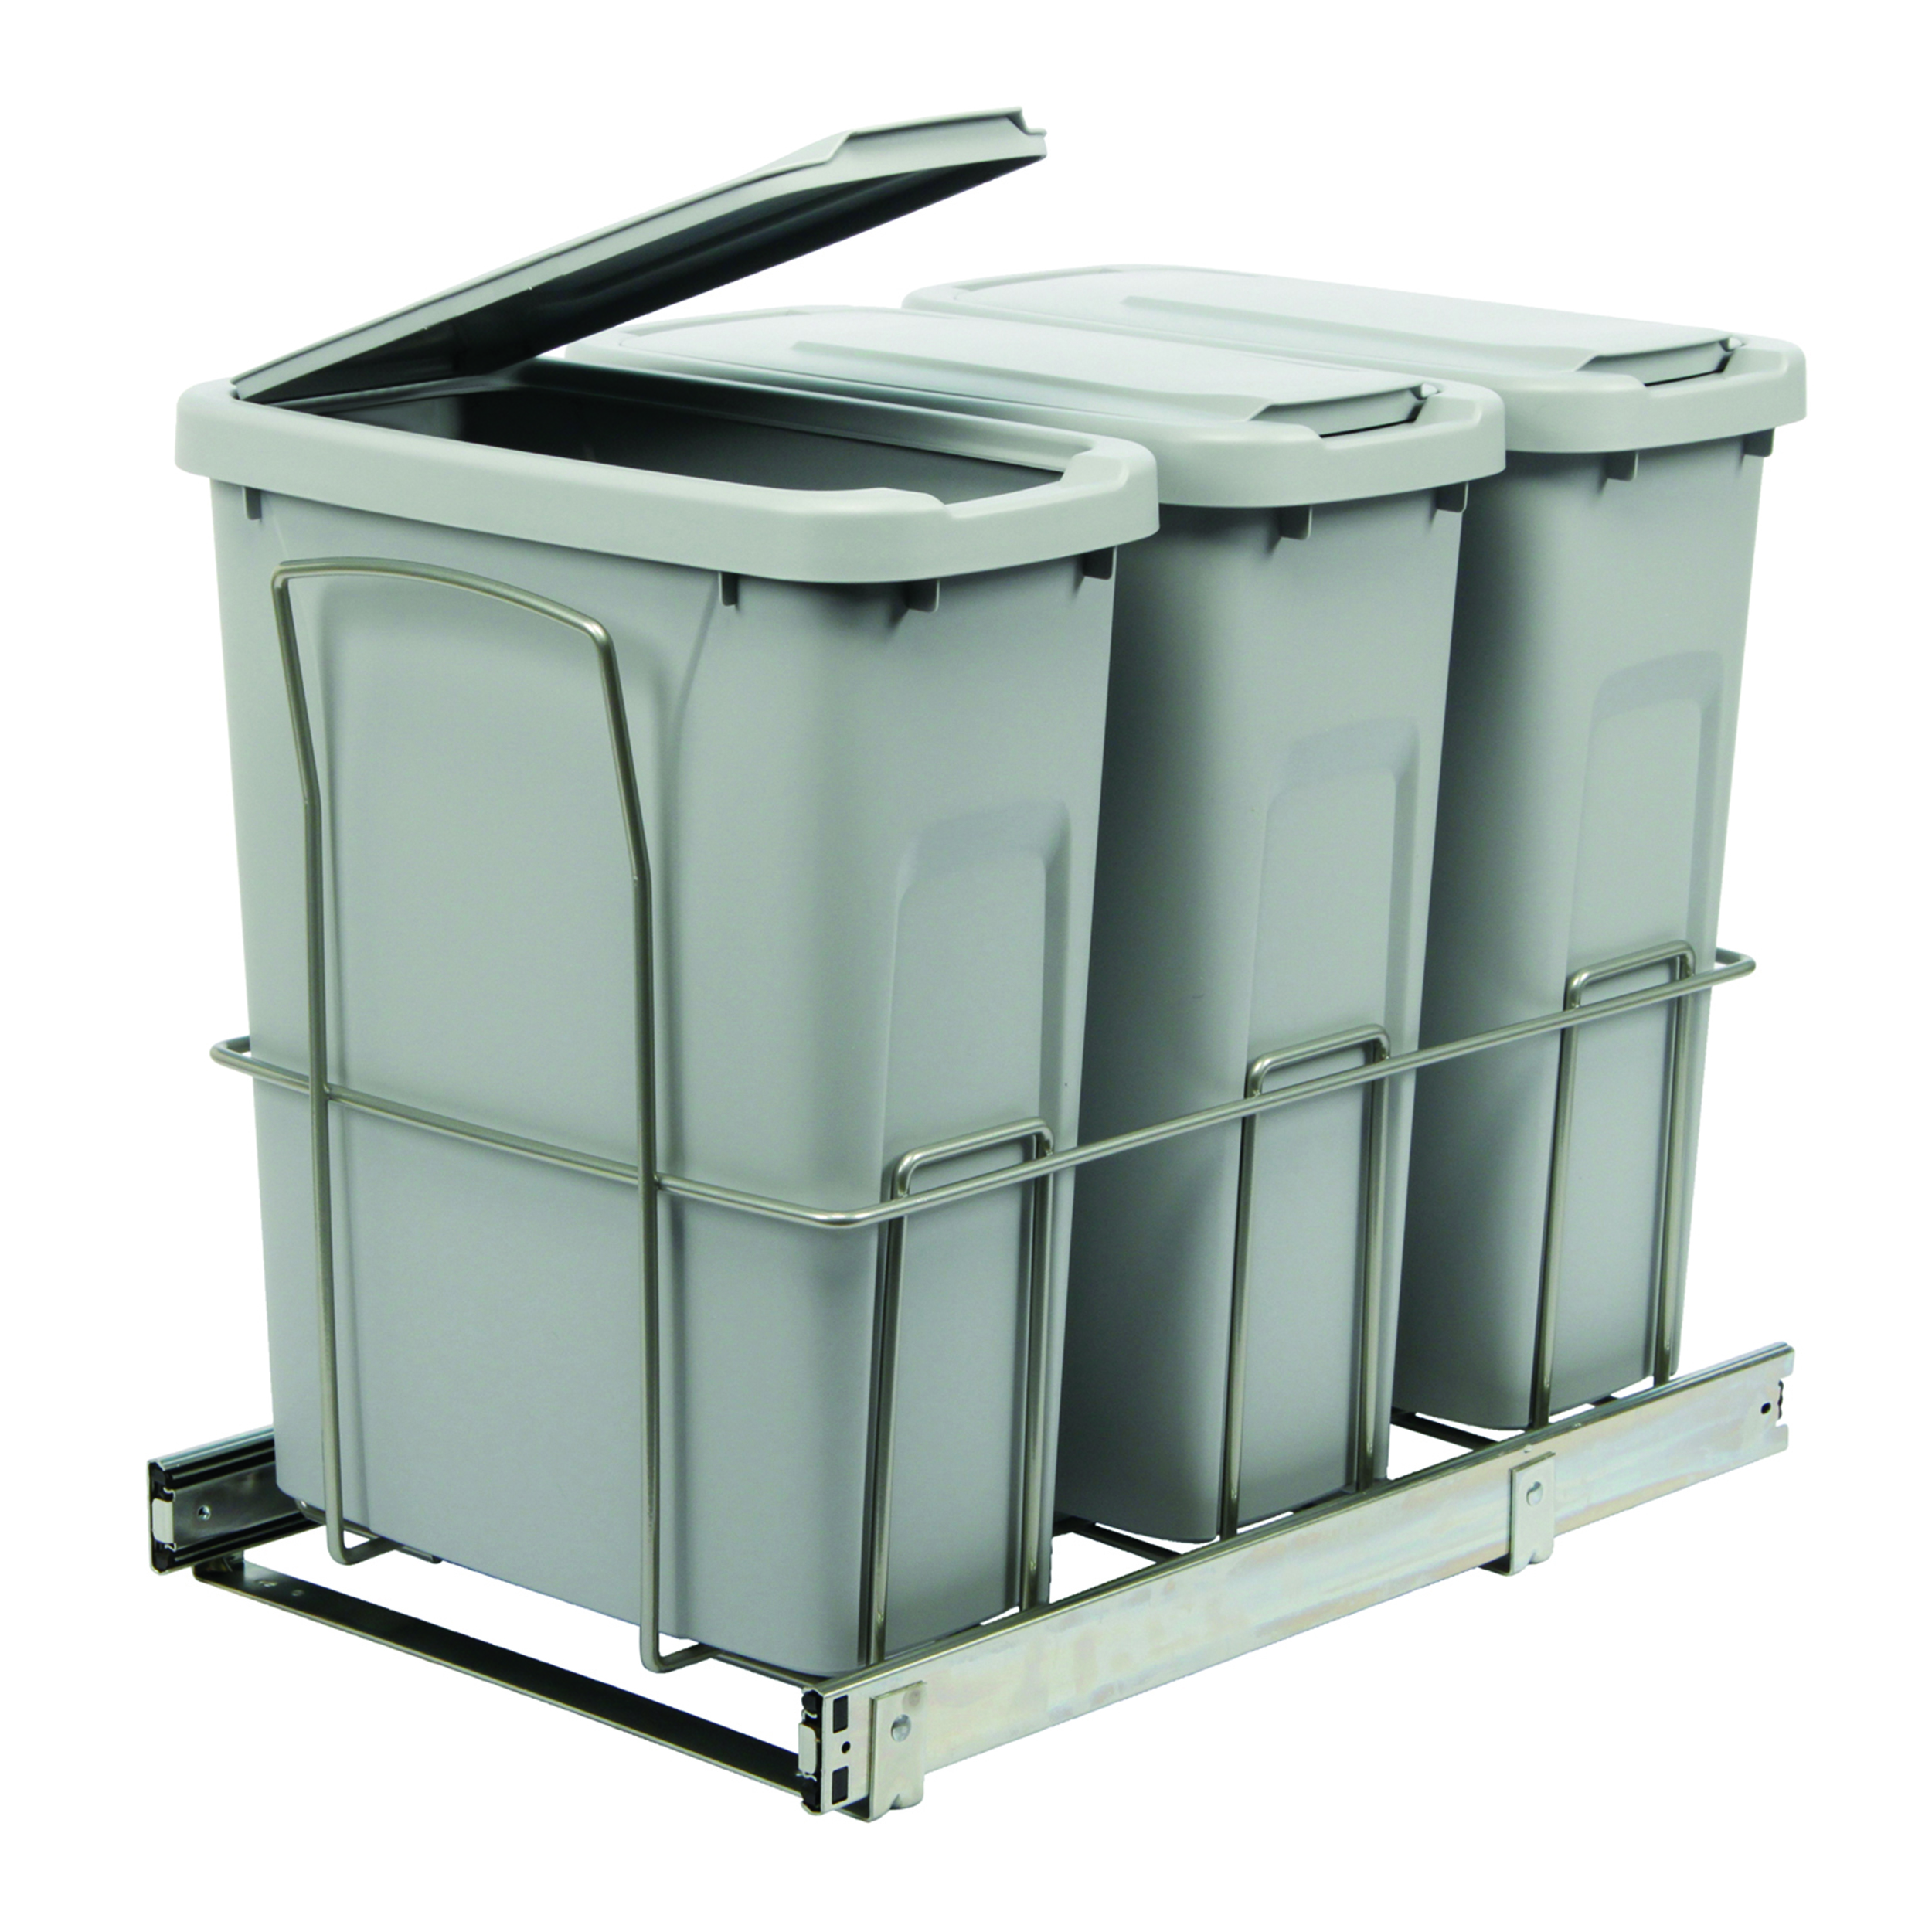 Real Solutions Triple 20qt Pull-out Waste & Recyling Unit with Lid, Platinum